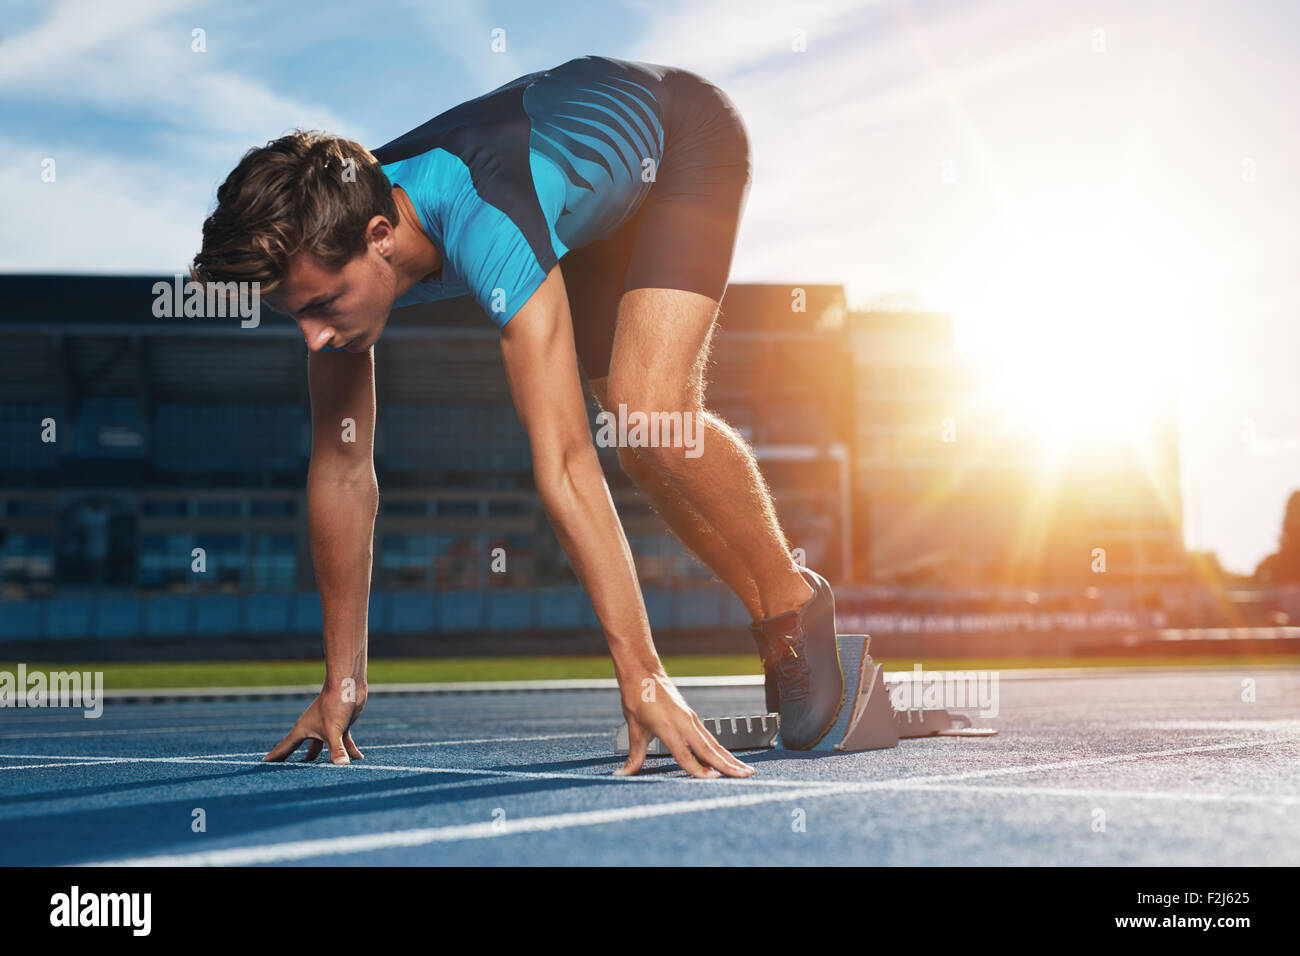 Young male runner taking ready to start position against bright sunlight. Sprinter on starting block of a racetrack - Stock Image